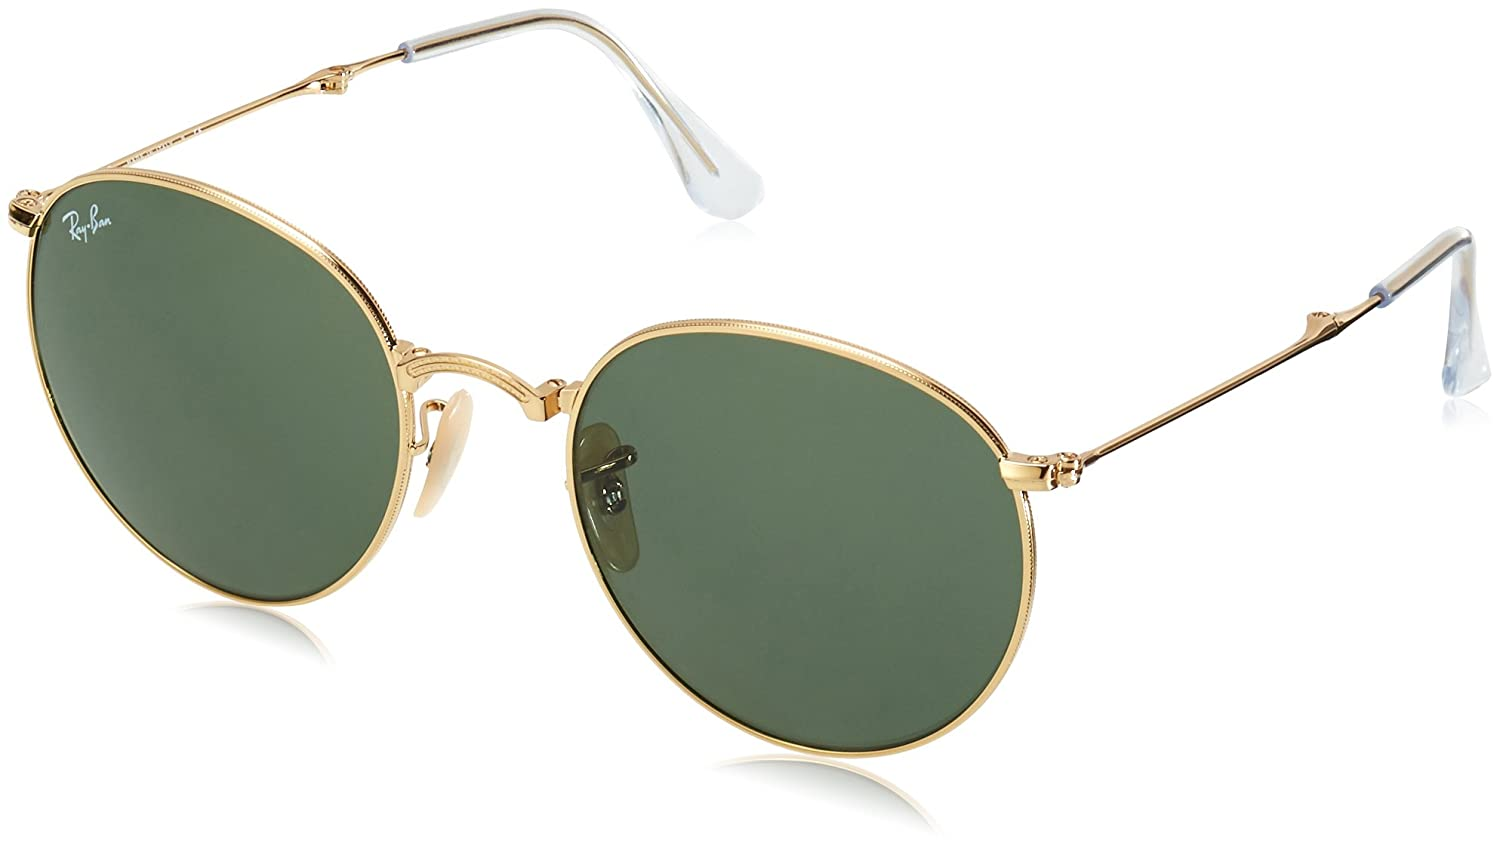 TALLA 50. Ray-Ban Sonnenbrille (RB 3532)